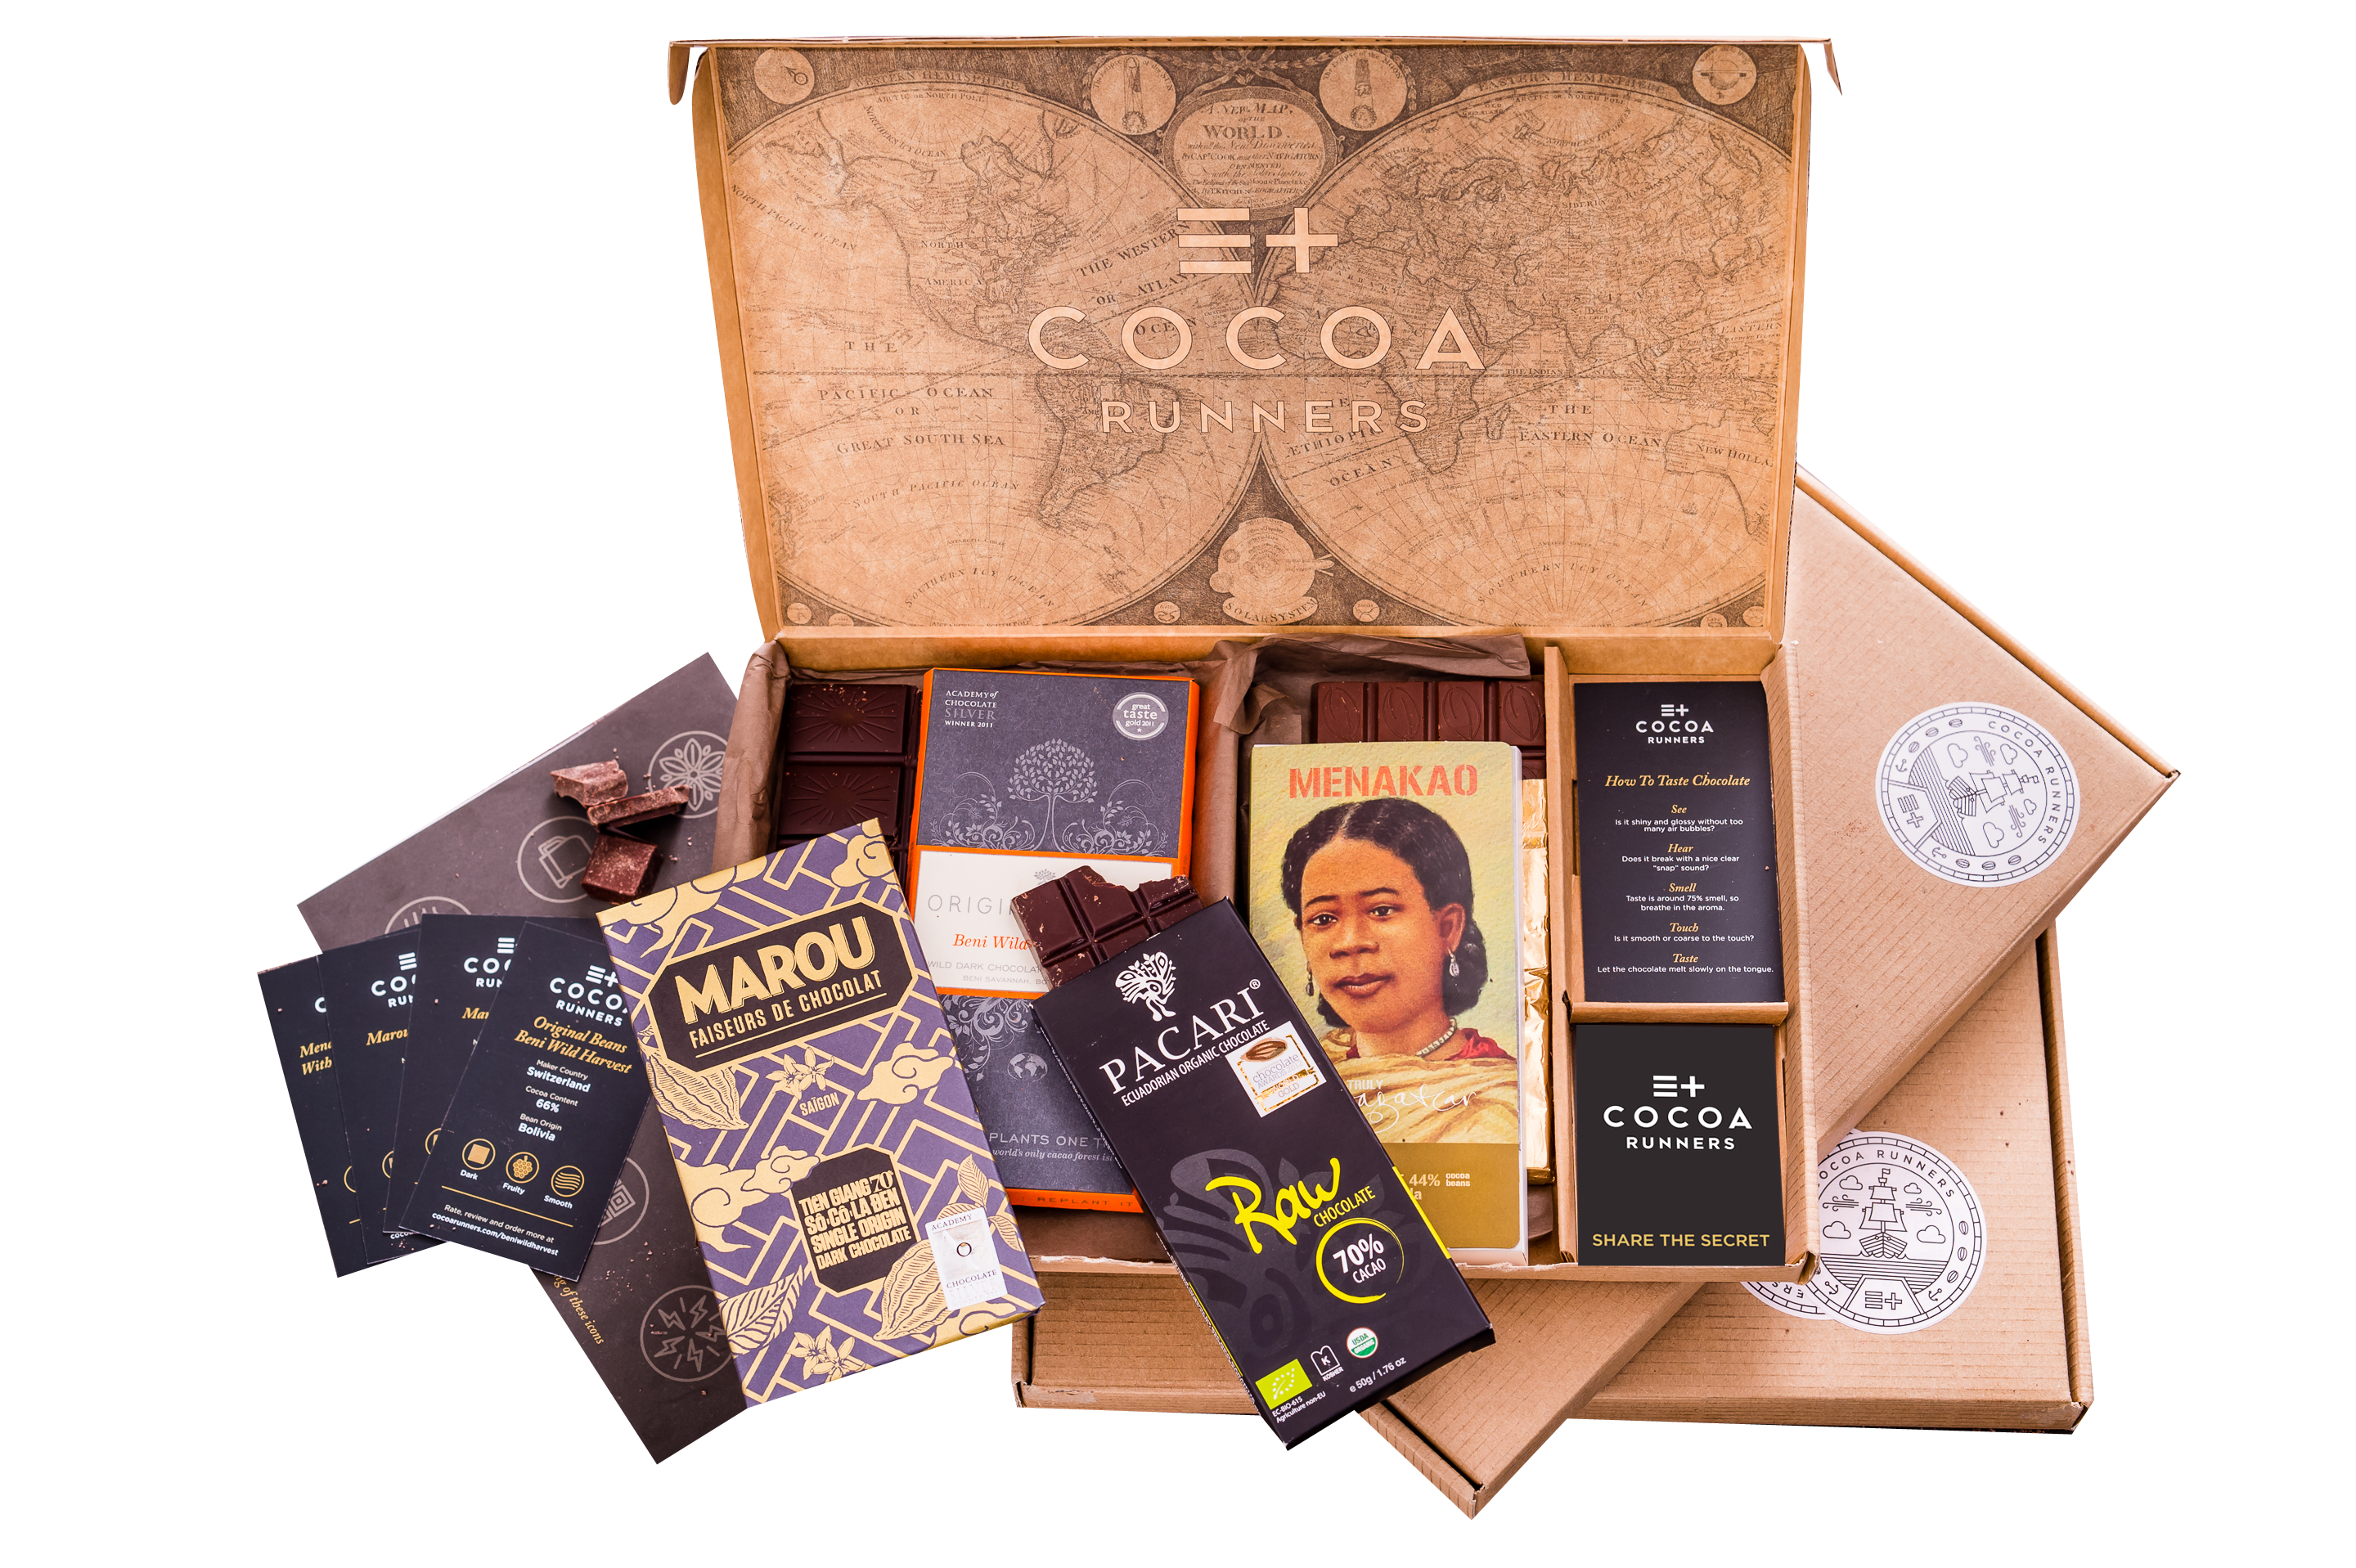 A box from cocoa runners contains tasting notes, specially selected bars from artisan chocolate makers around the world